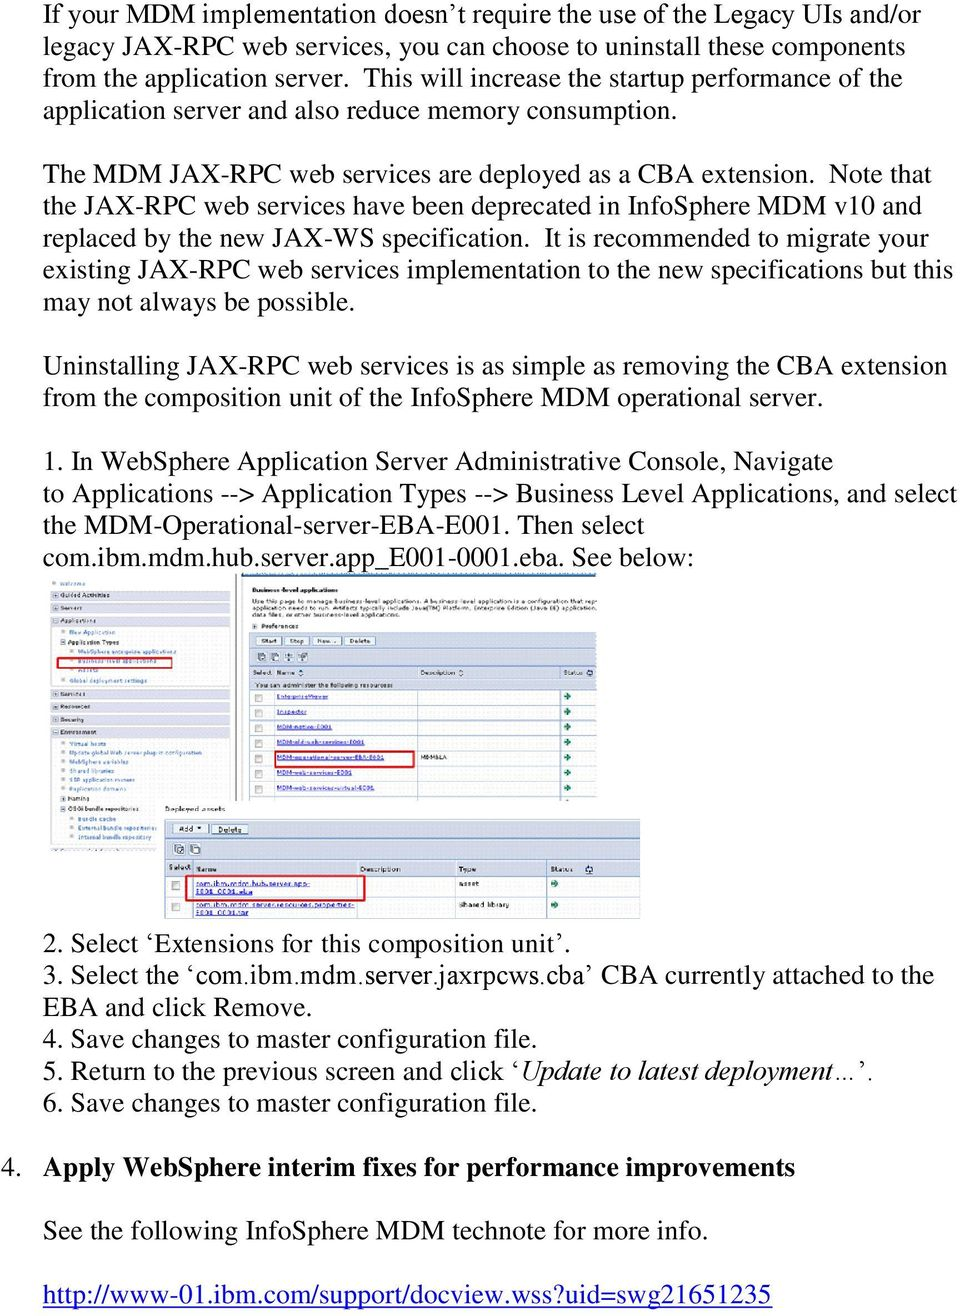 Note that the JAX-RPC web services have been deprecated in InfoSphere MDM v10 and replaced by the new JAX-WS specification.